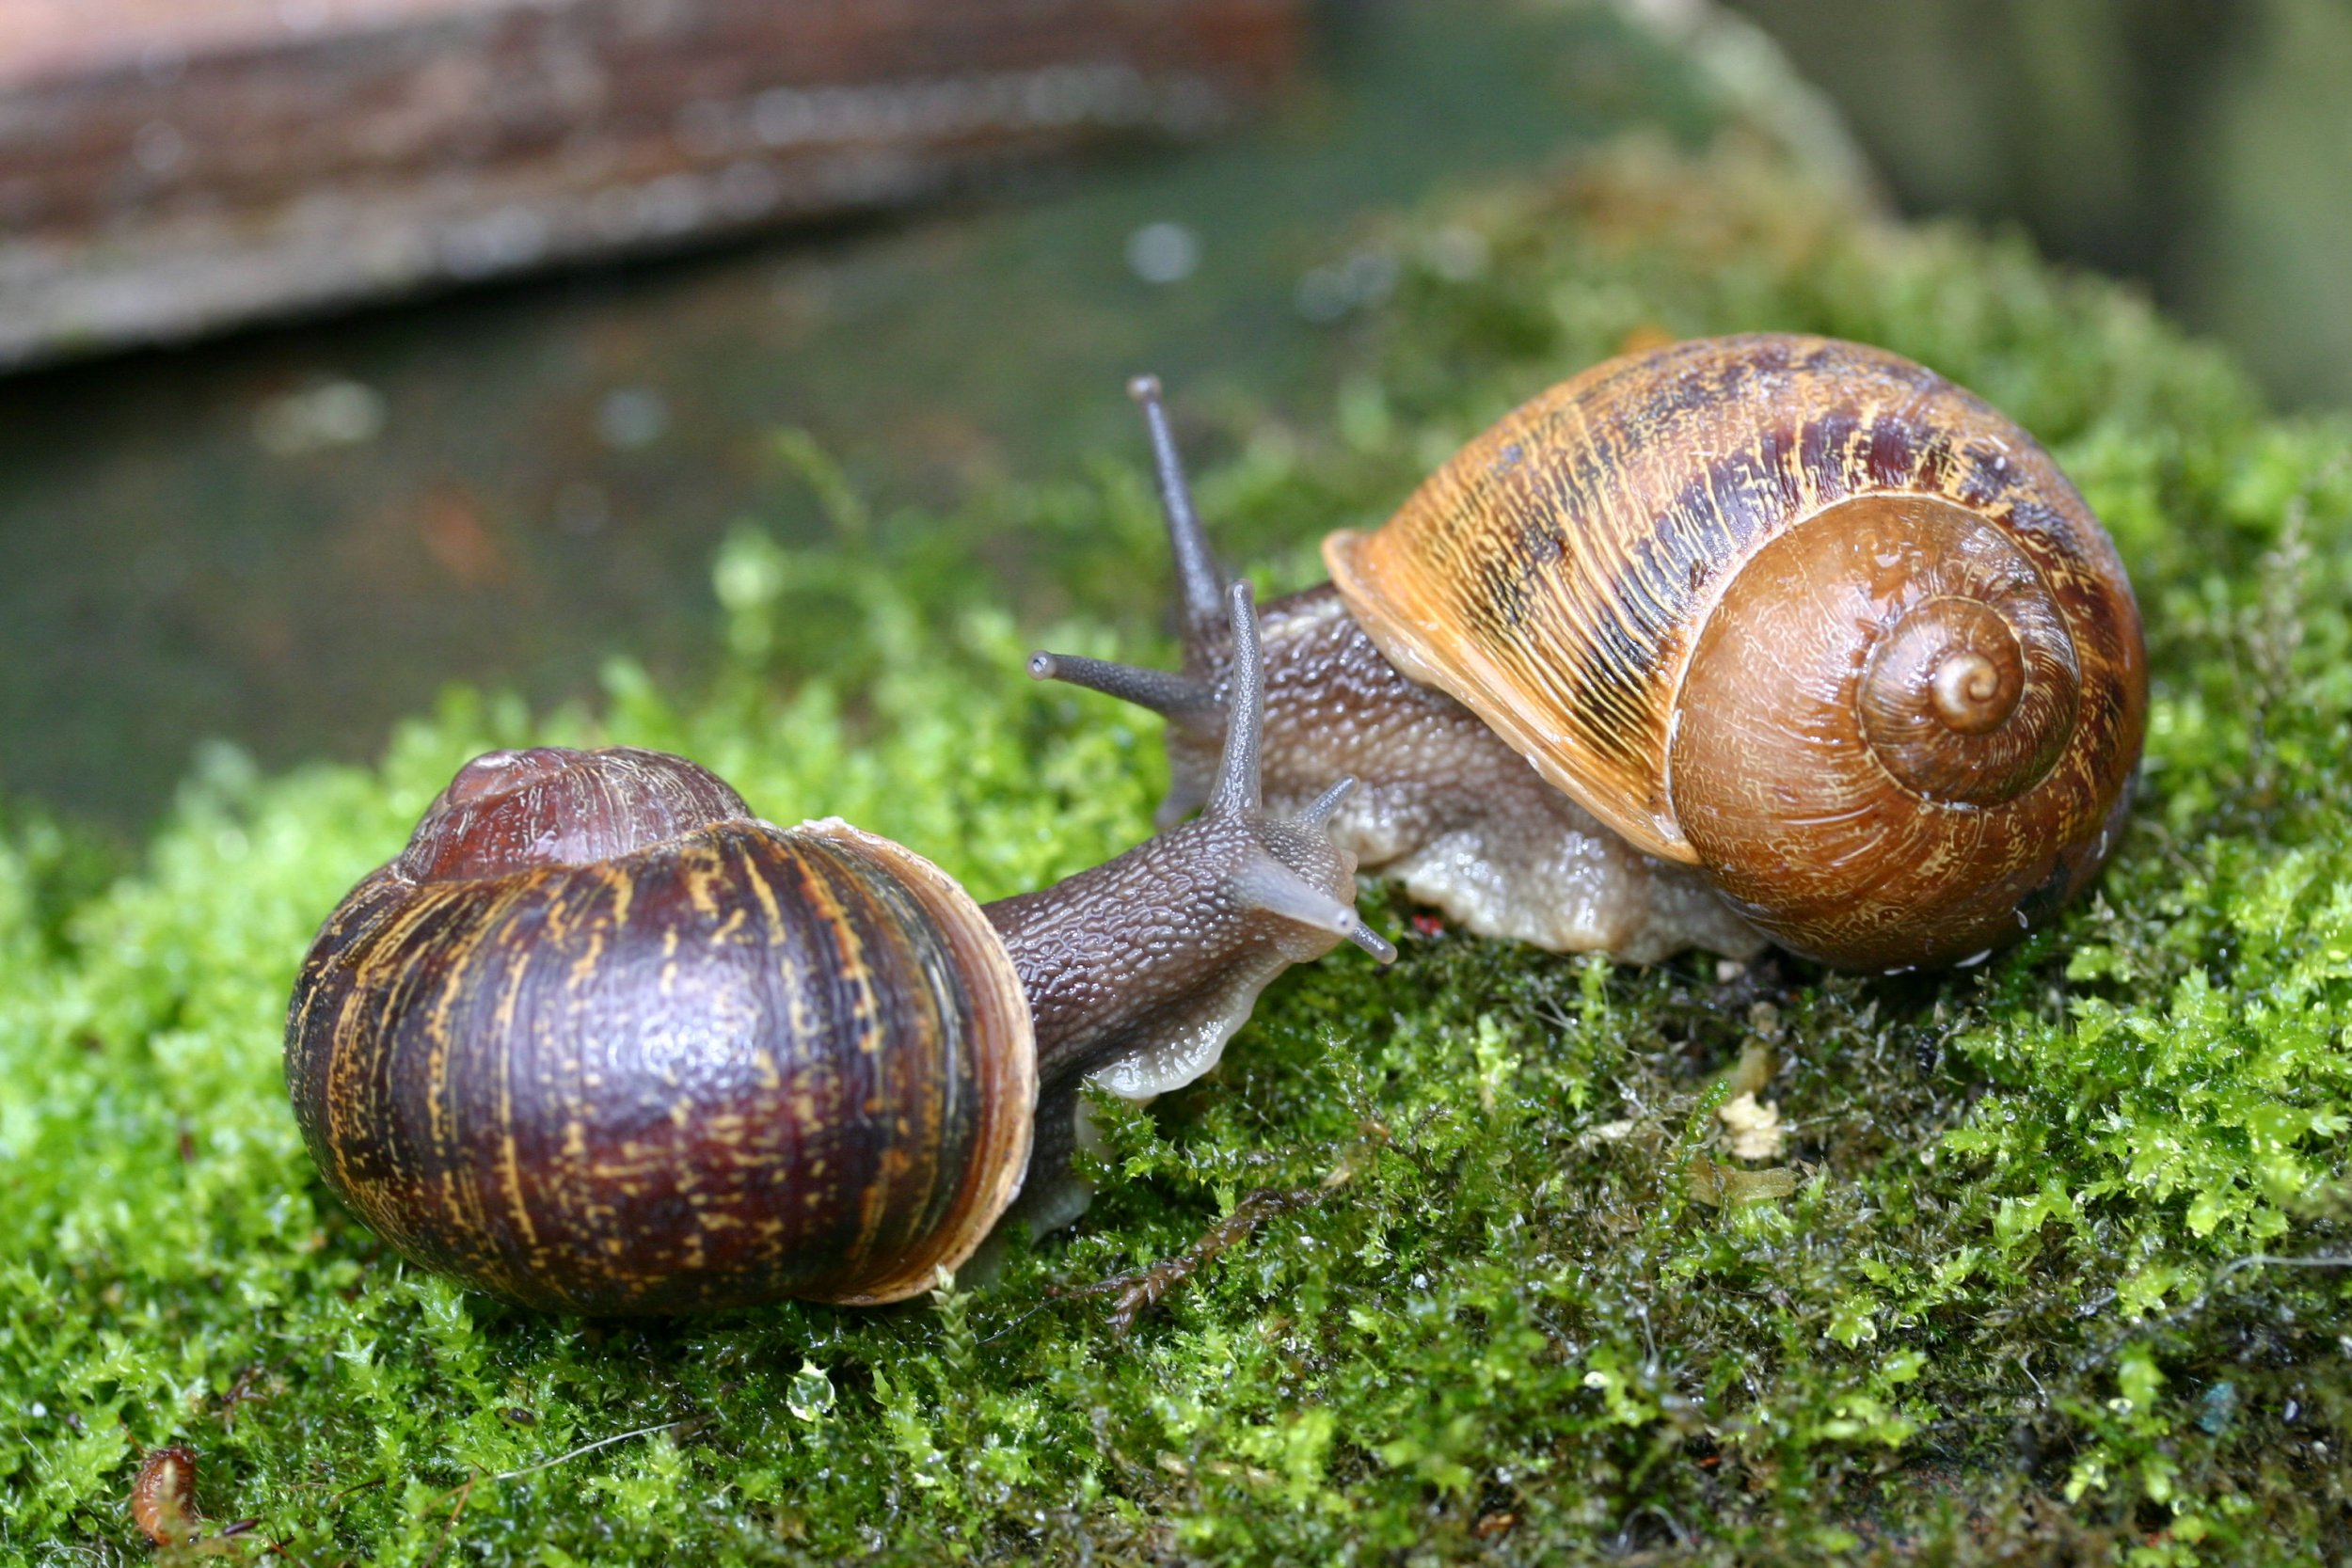 """University of Nottingham undated handout photo of Lefty (right) and Jeremy. Two potential mates have been lined up for a lonely snail after a scientist appealed to the public to help find a partner for the mollusc whose shell spirals in the wrong direction. PRESS ASSOCIATION Photo. Issue date: Tuesday November 8, 2016. The common garden snail, named Jeremy, may appear like others to the naked eye, but he was dubbed a """"one in a million find"""" as he is the mirror image of how other snails appear. Jeremy's shell spirals in an anti-clockwise direction which means he is unable to mate with snails whose shells spiral the opposite way. See PA story ANIMALS Snail. Photo credit should read: University of Nottingham/PA Wire NOTE TO EDITORS: This handout photo may only be used in for editorial reporting purposes for the contemporaneous illustration of events, things or the people in the image or facts mentioned in the caption. Reuse of the picture may require further permission from the copyright holder."""